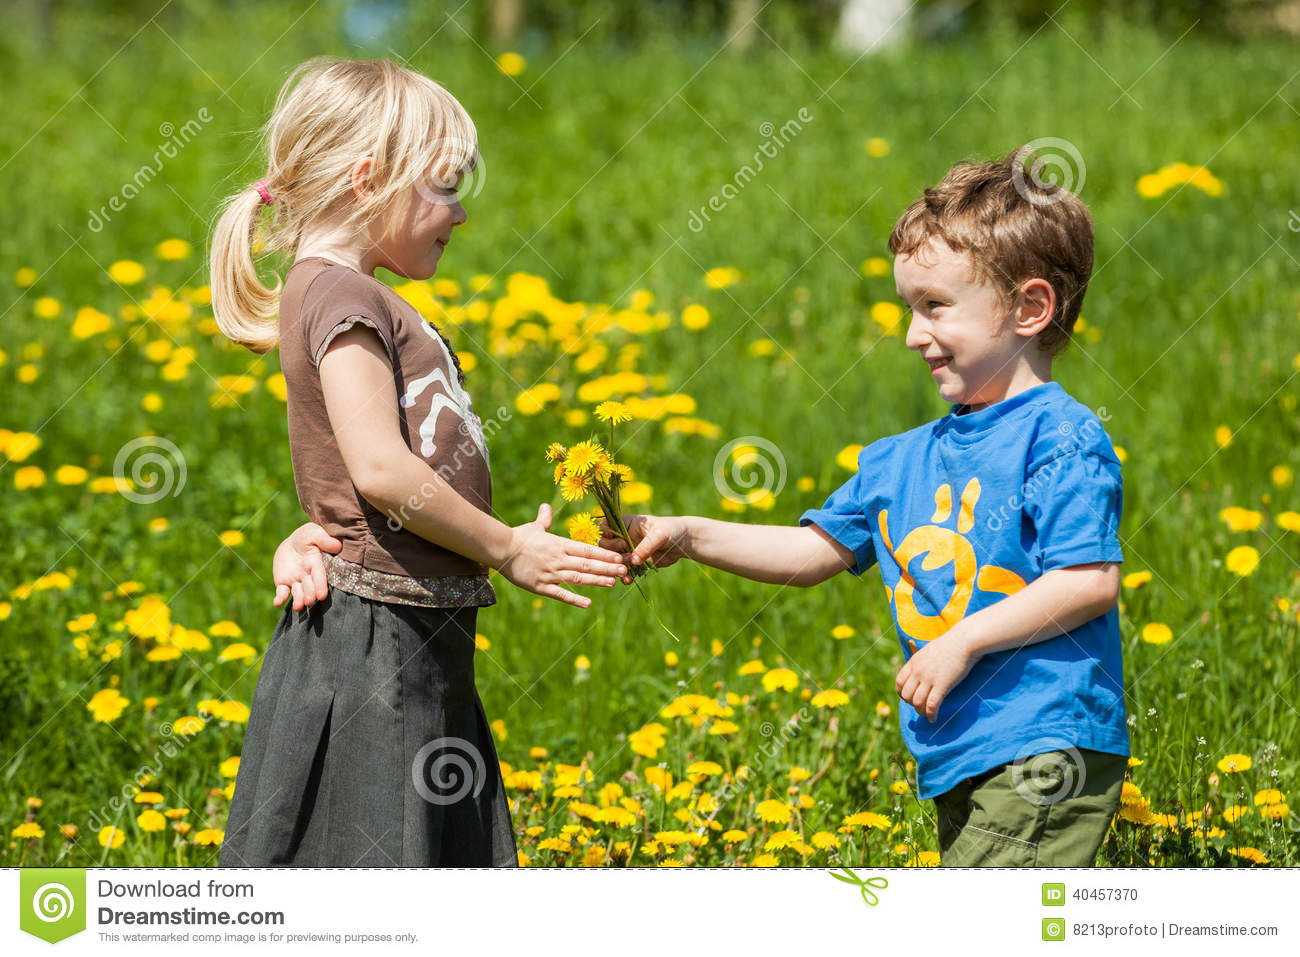 Boy giving flowers for a girl stock photo image of children field boy giving flowers for a girl stock photo image of children field 40457370 izmirmasajfo